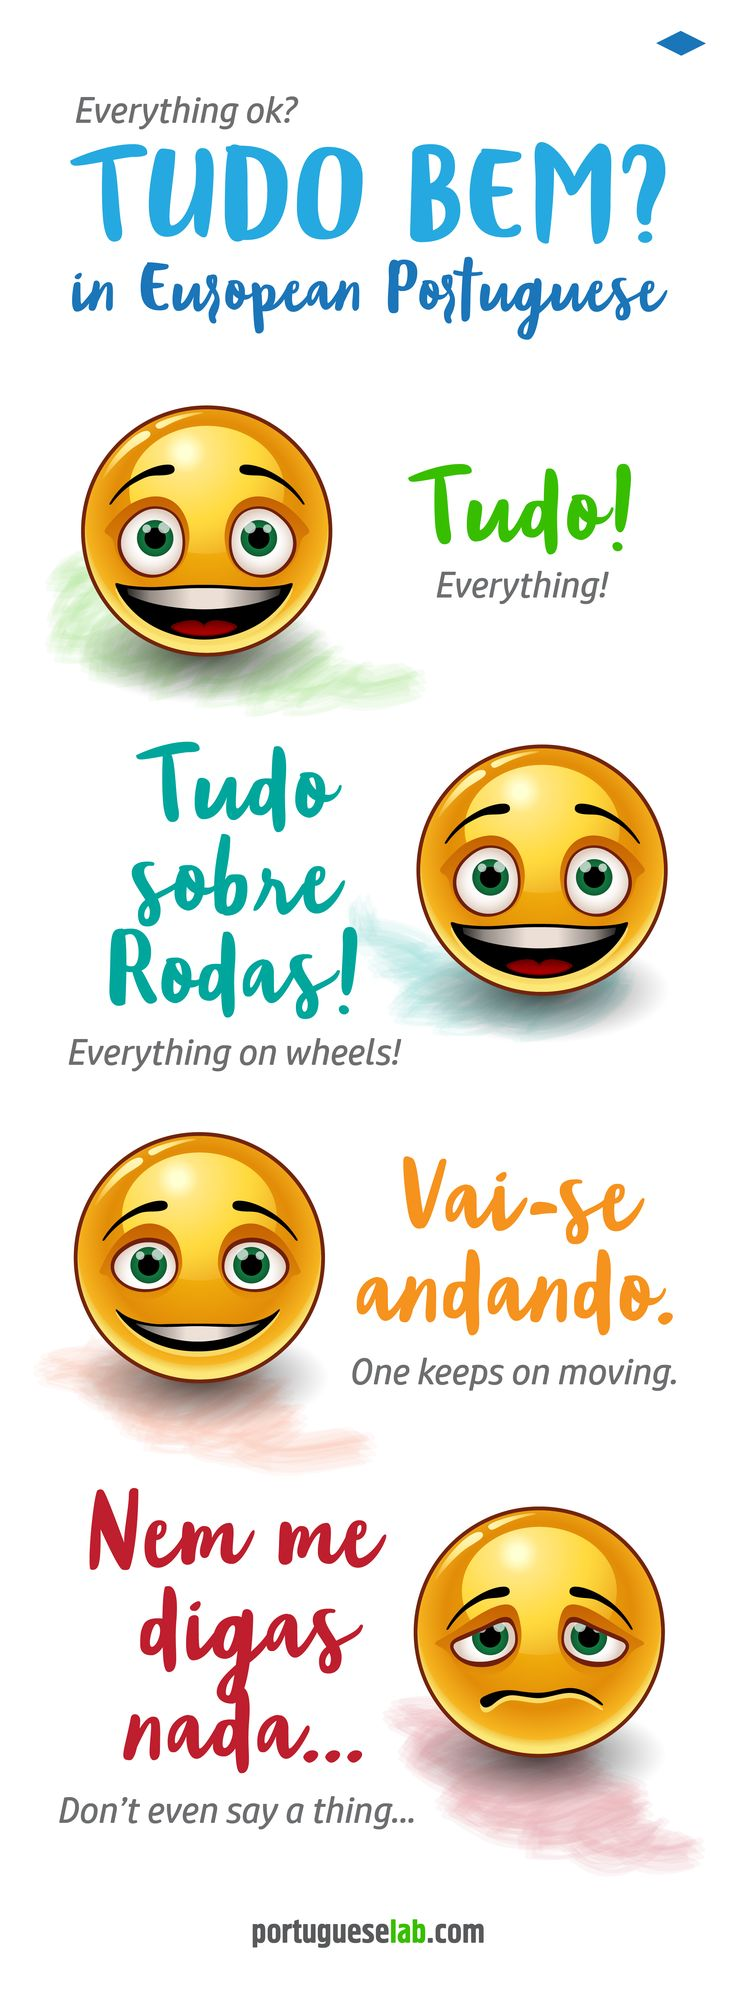 Learn Portuguese Twice as Fast with PDF - PortuguesePod101.com